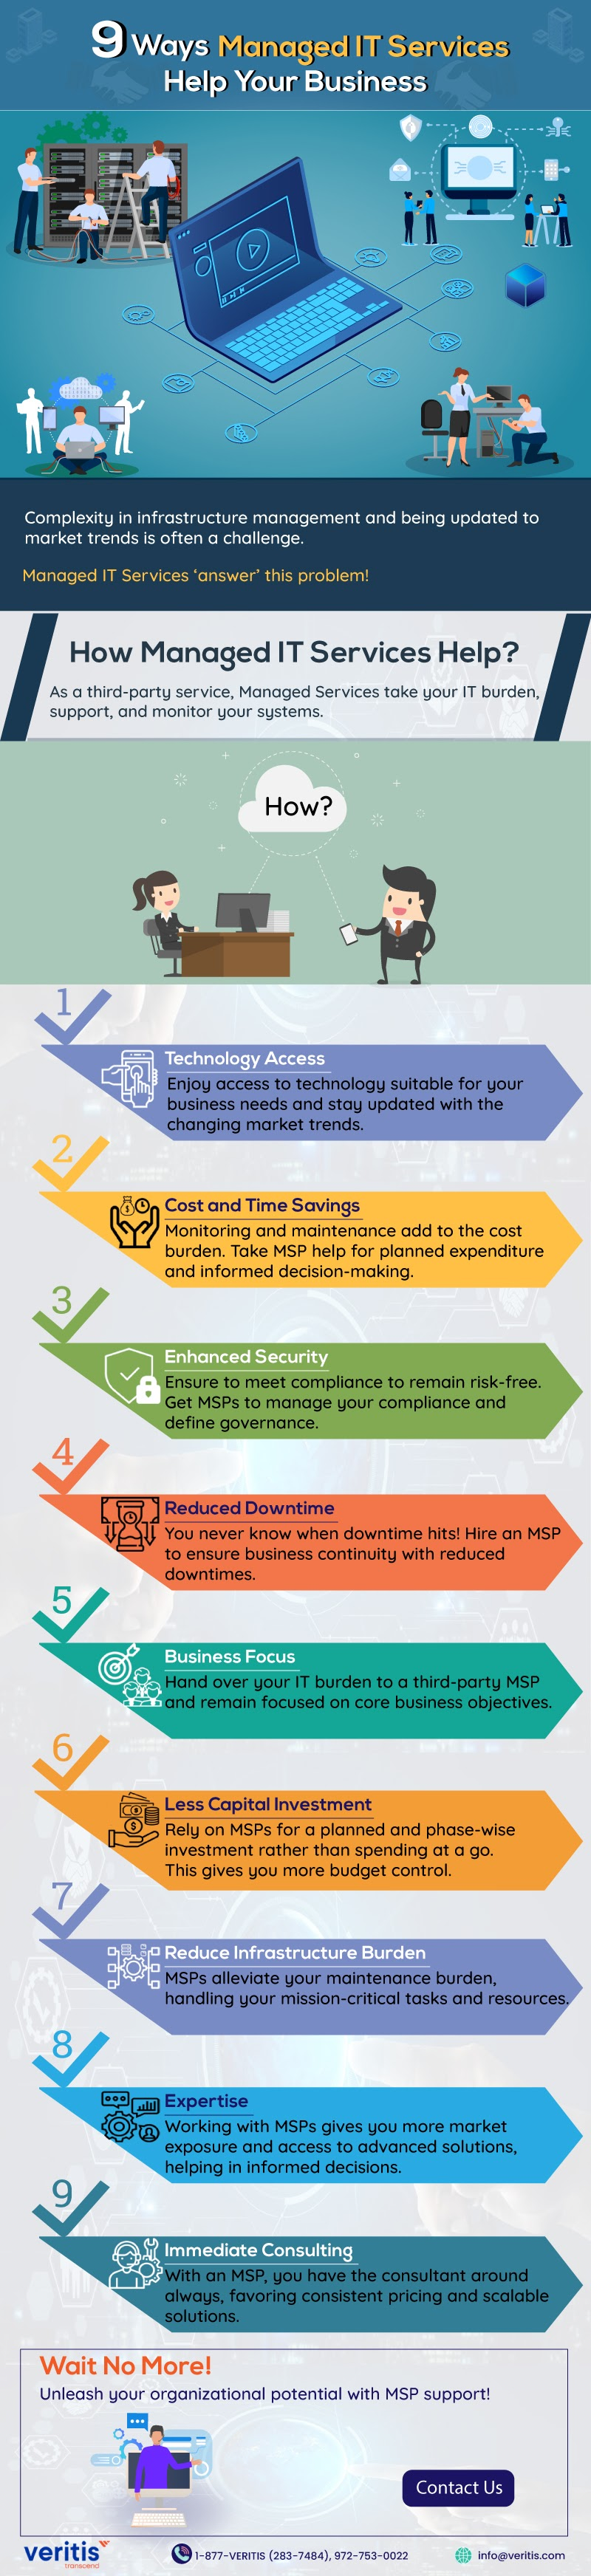 9 Ways Managed IT Services Help Your Business #infographic